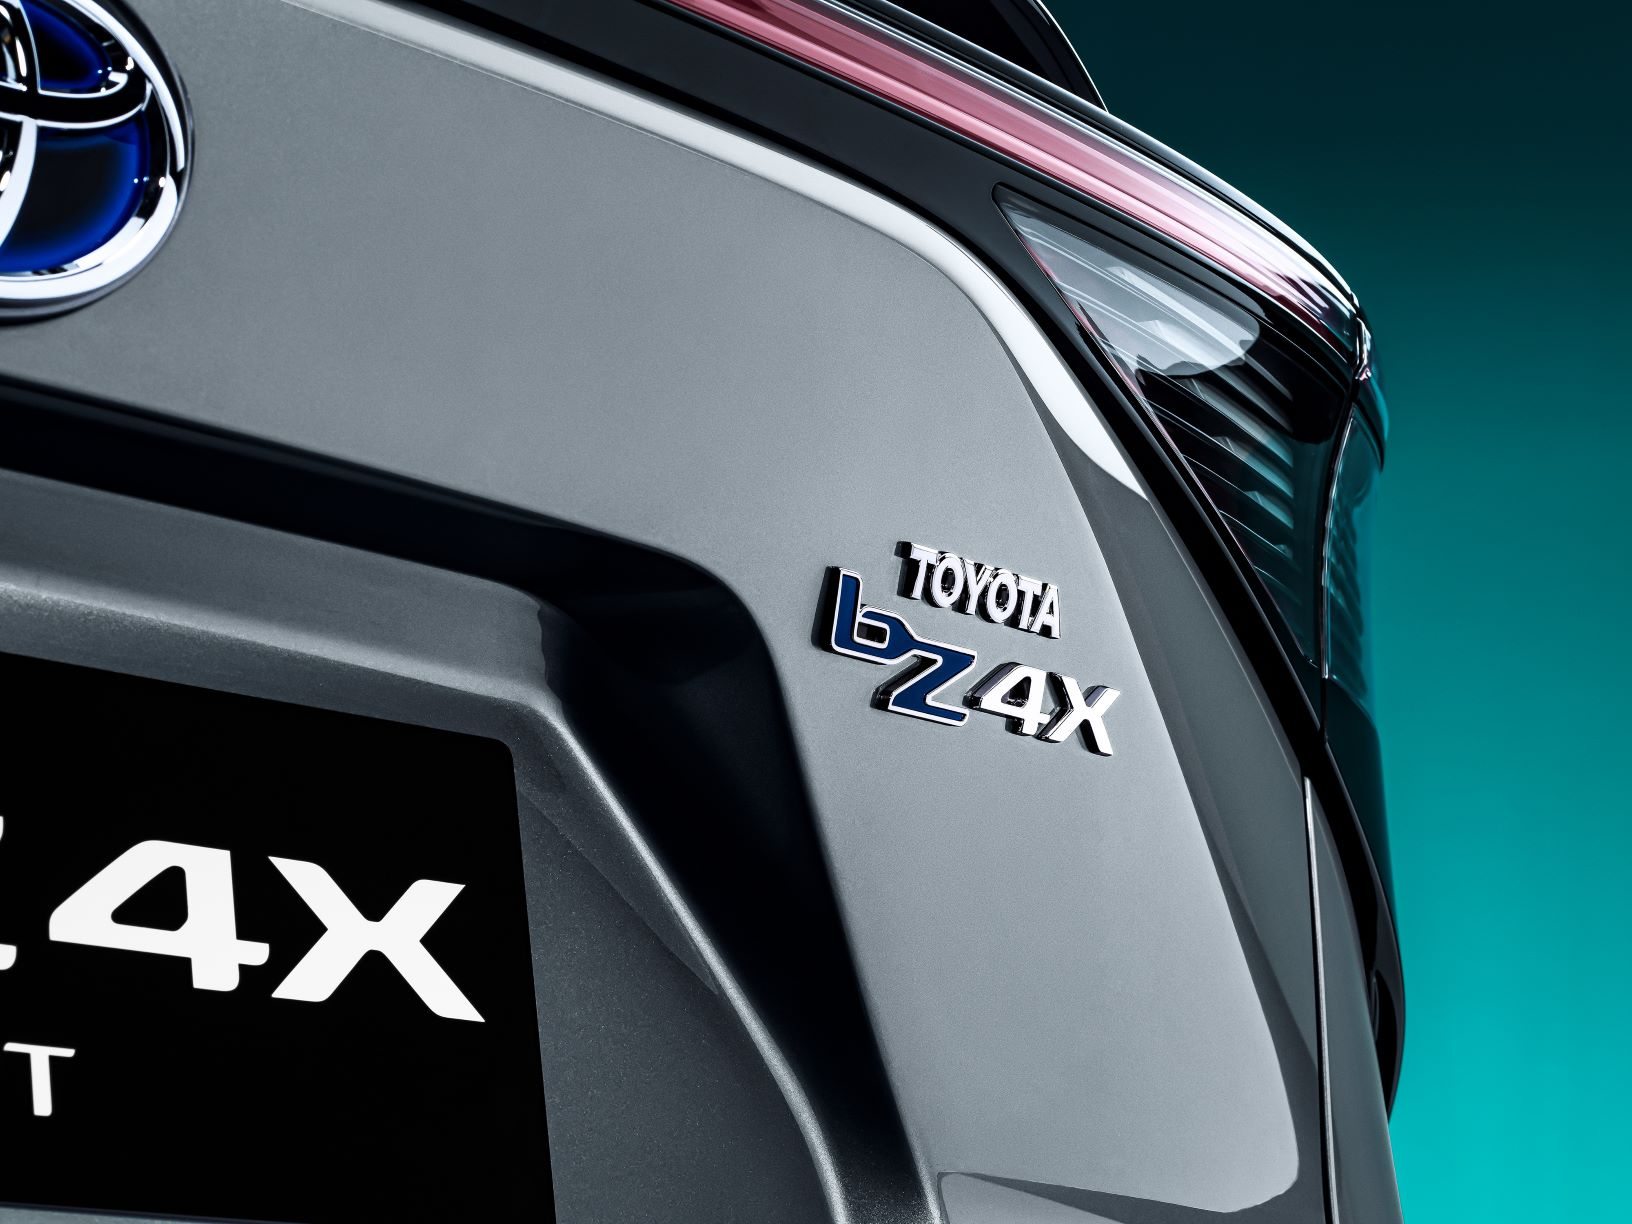 The badge of the Toyota bZ4X